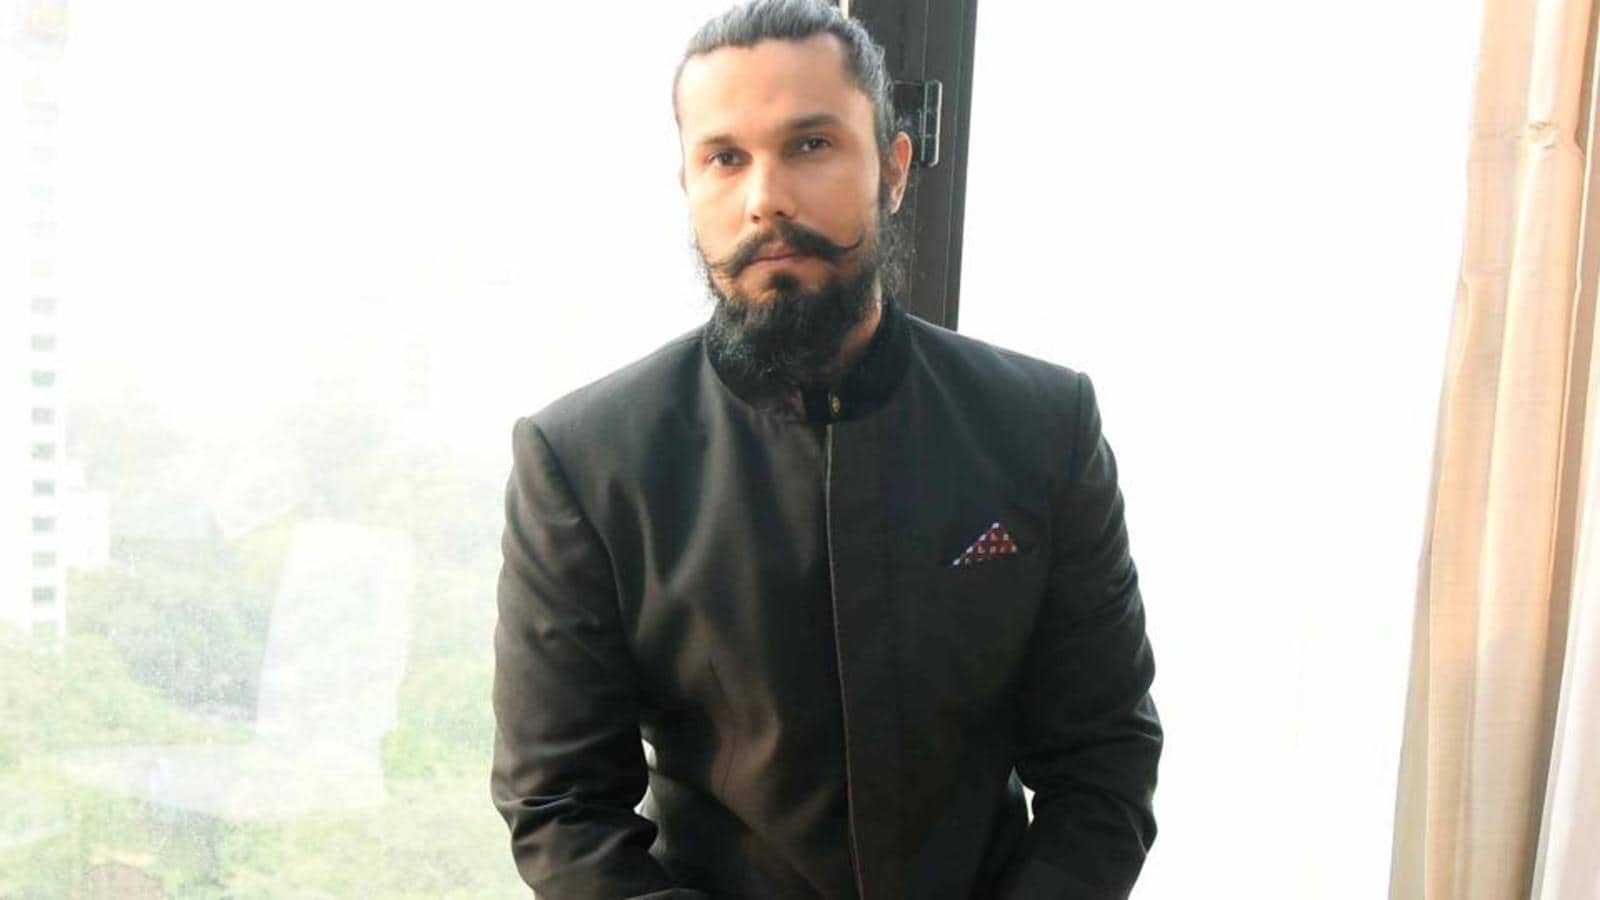 Randeep Hooda: I don't give a rattling about awards or recognition